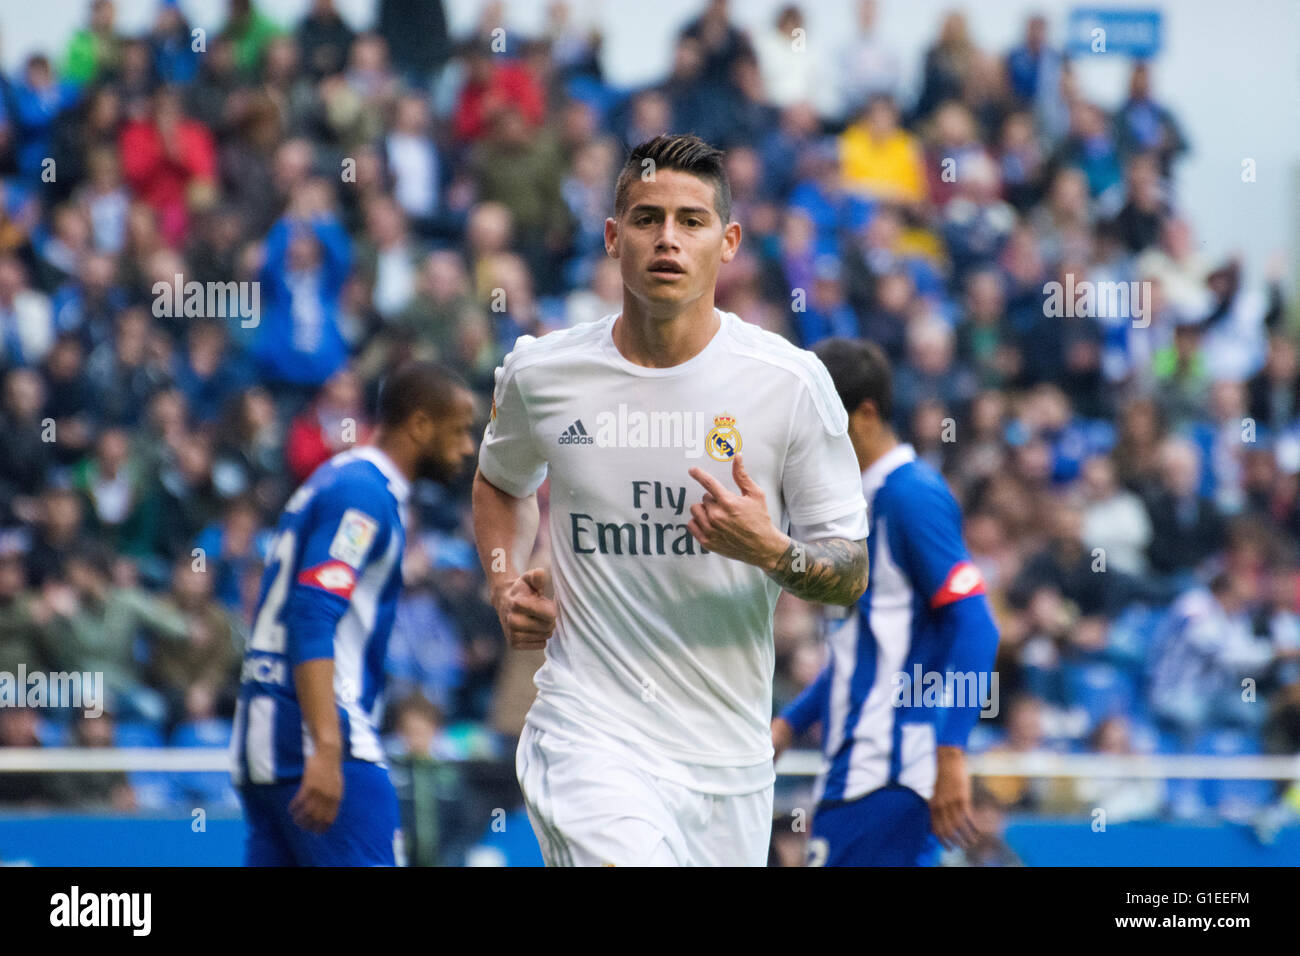 La Coruña, Spain. 14th May, 2016. James Rodriguez (Real Madrid) during the football match of last round of - Stock Image